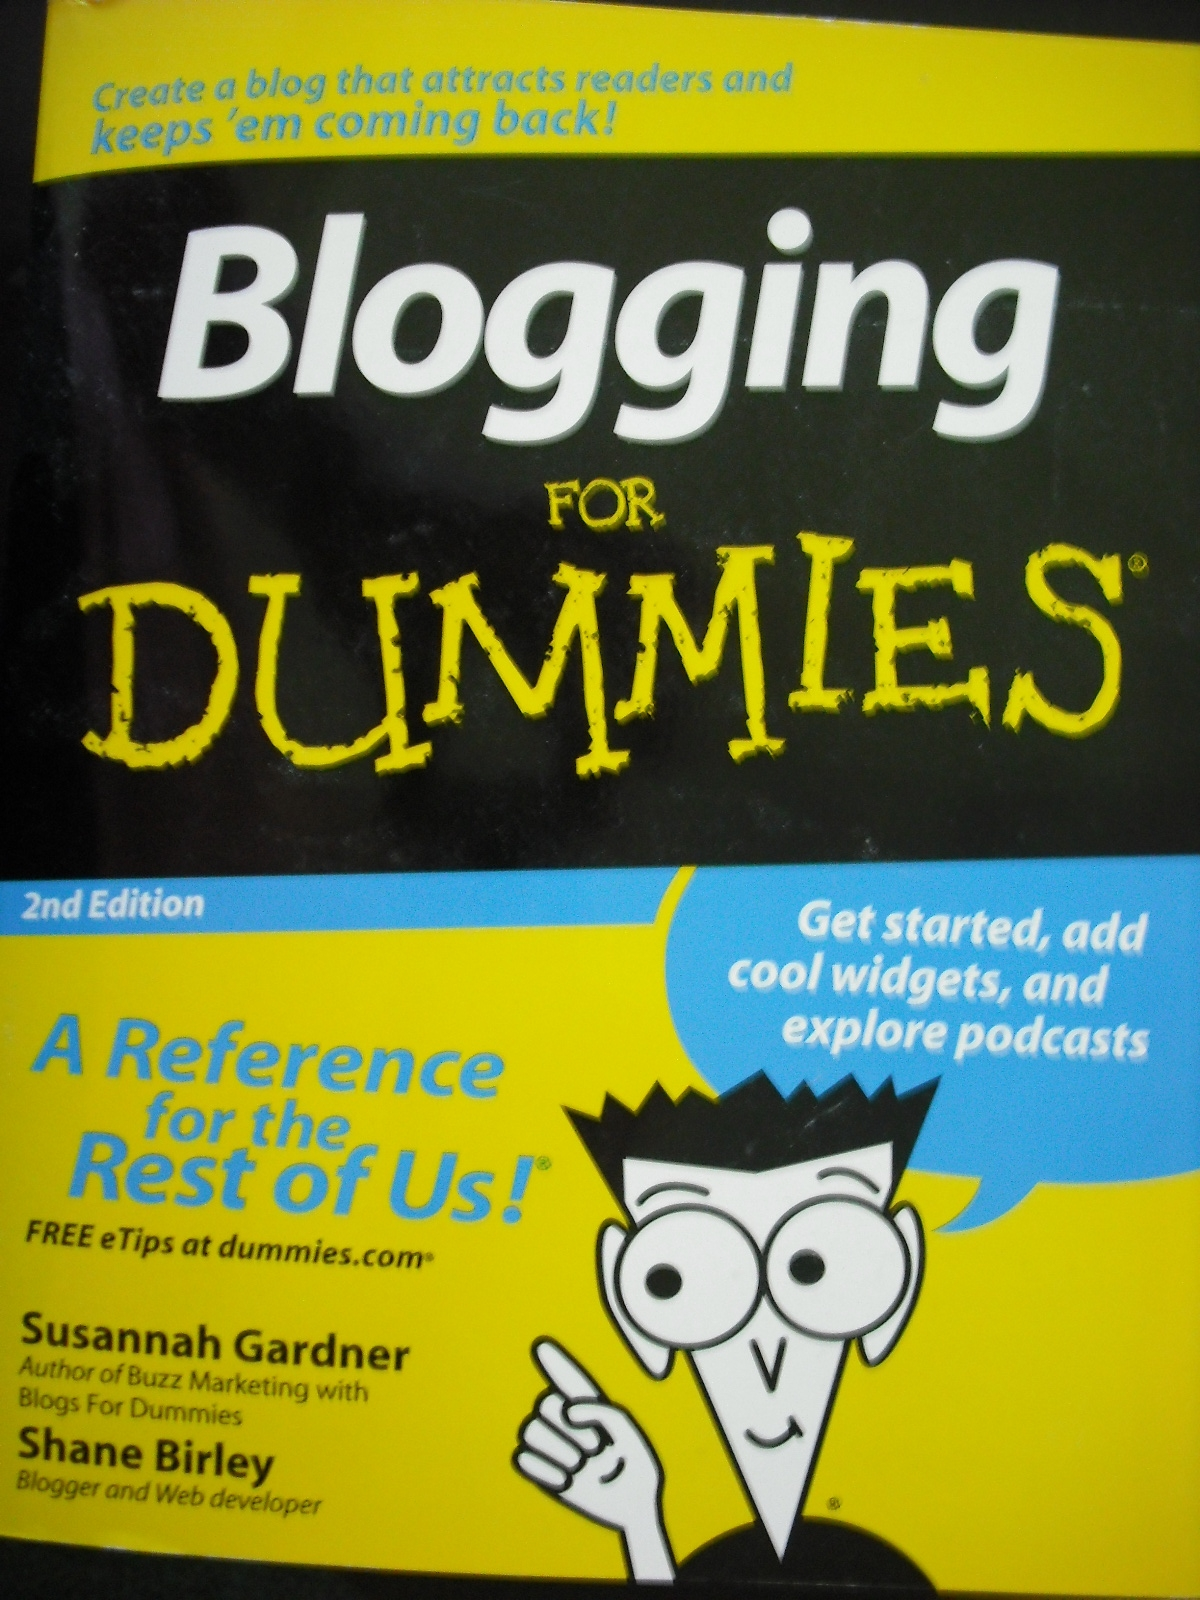 Blogging For Dummies-I don't need you anymore, Dan Gookin